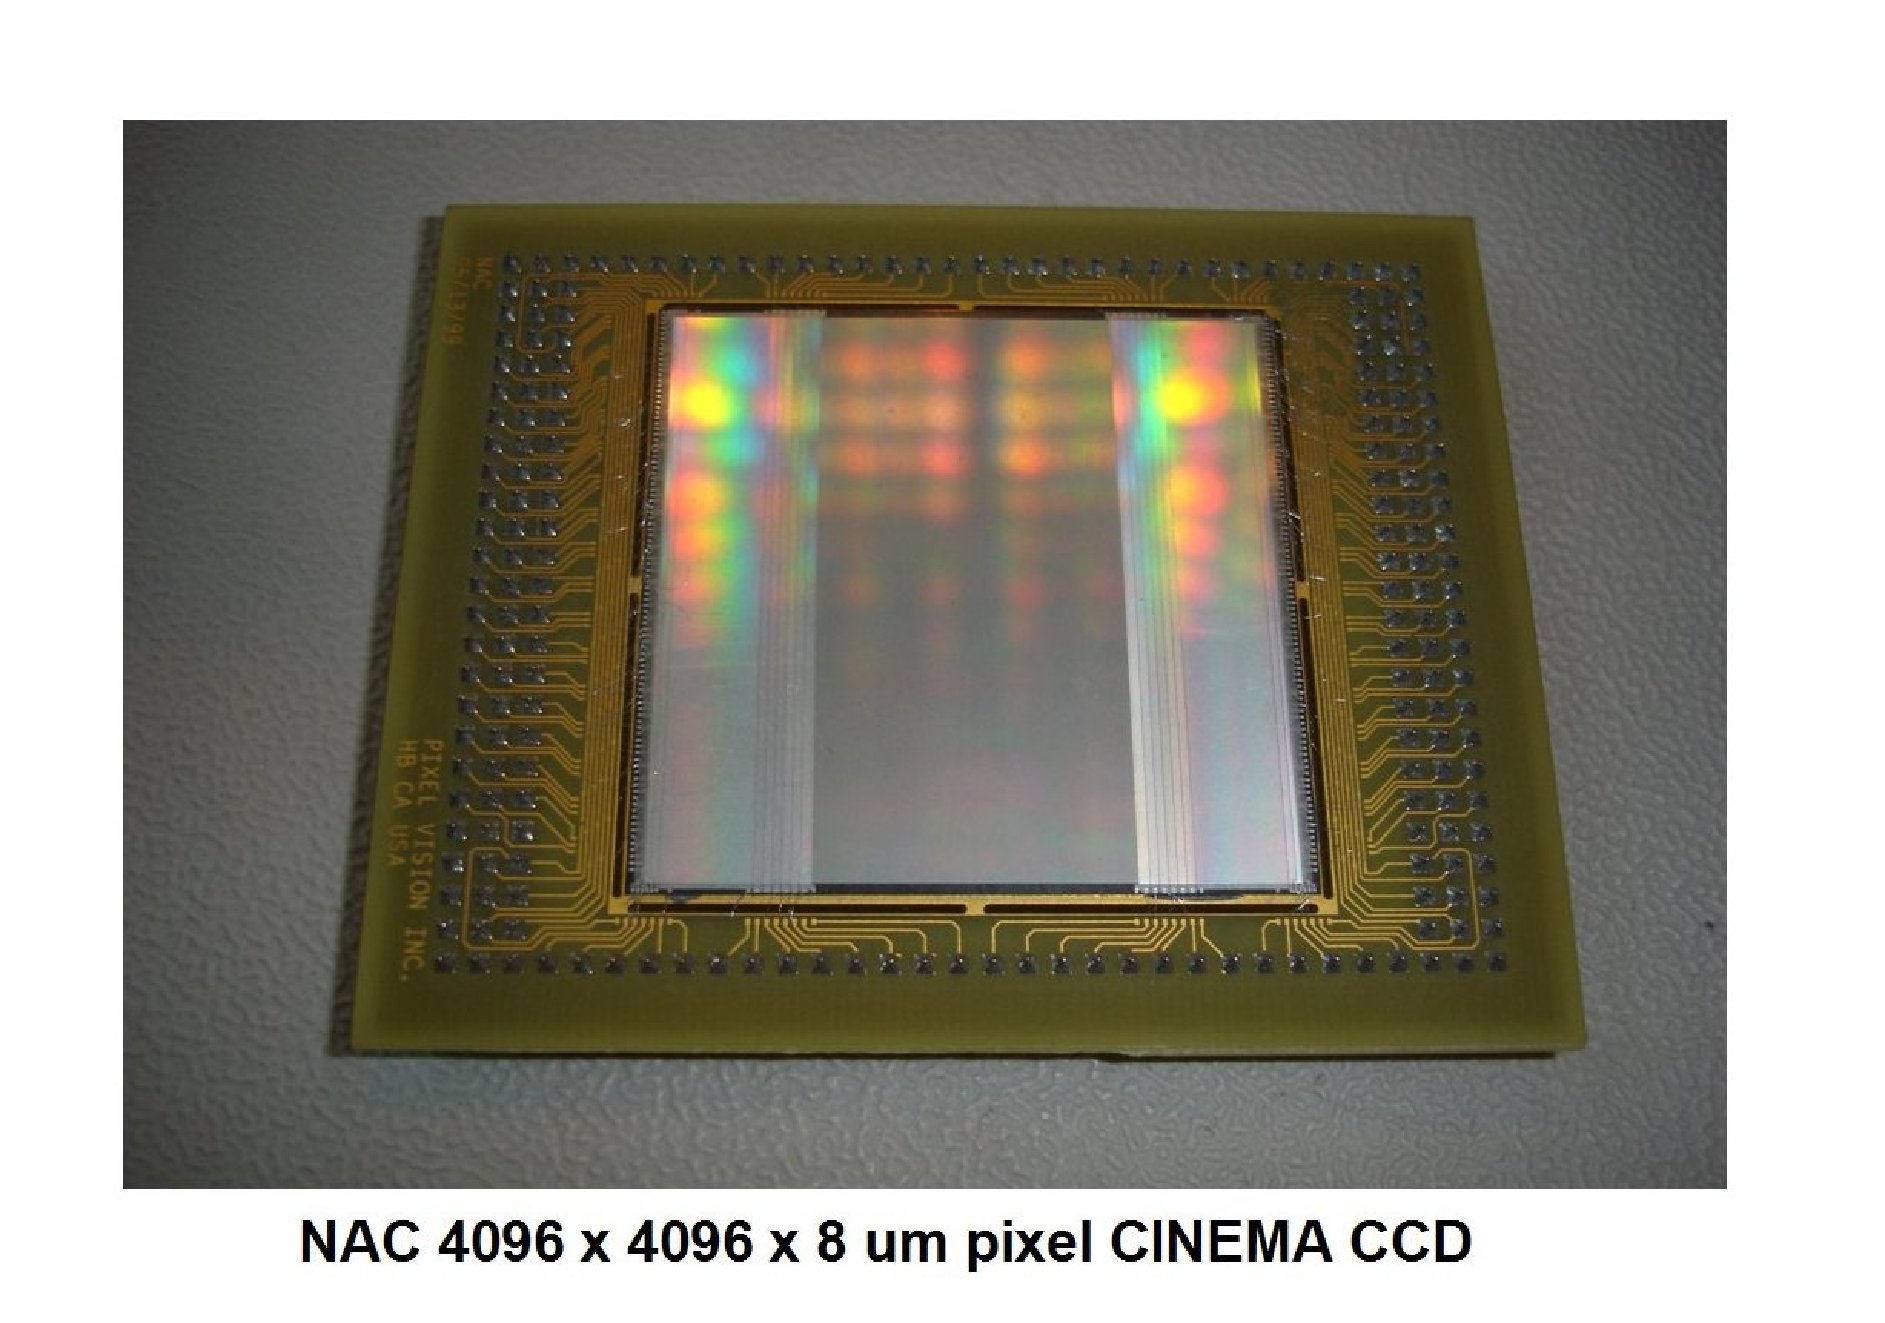 Janesick NAC 4096 x 4096 commercial Cinema CCD imager